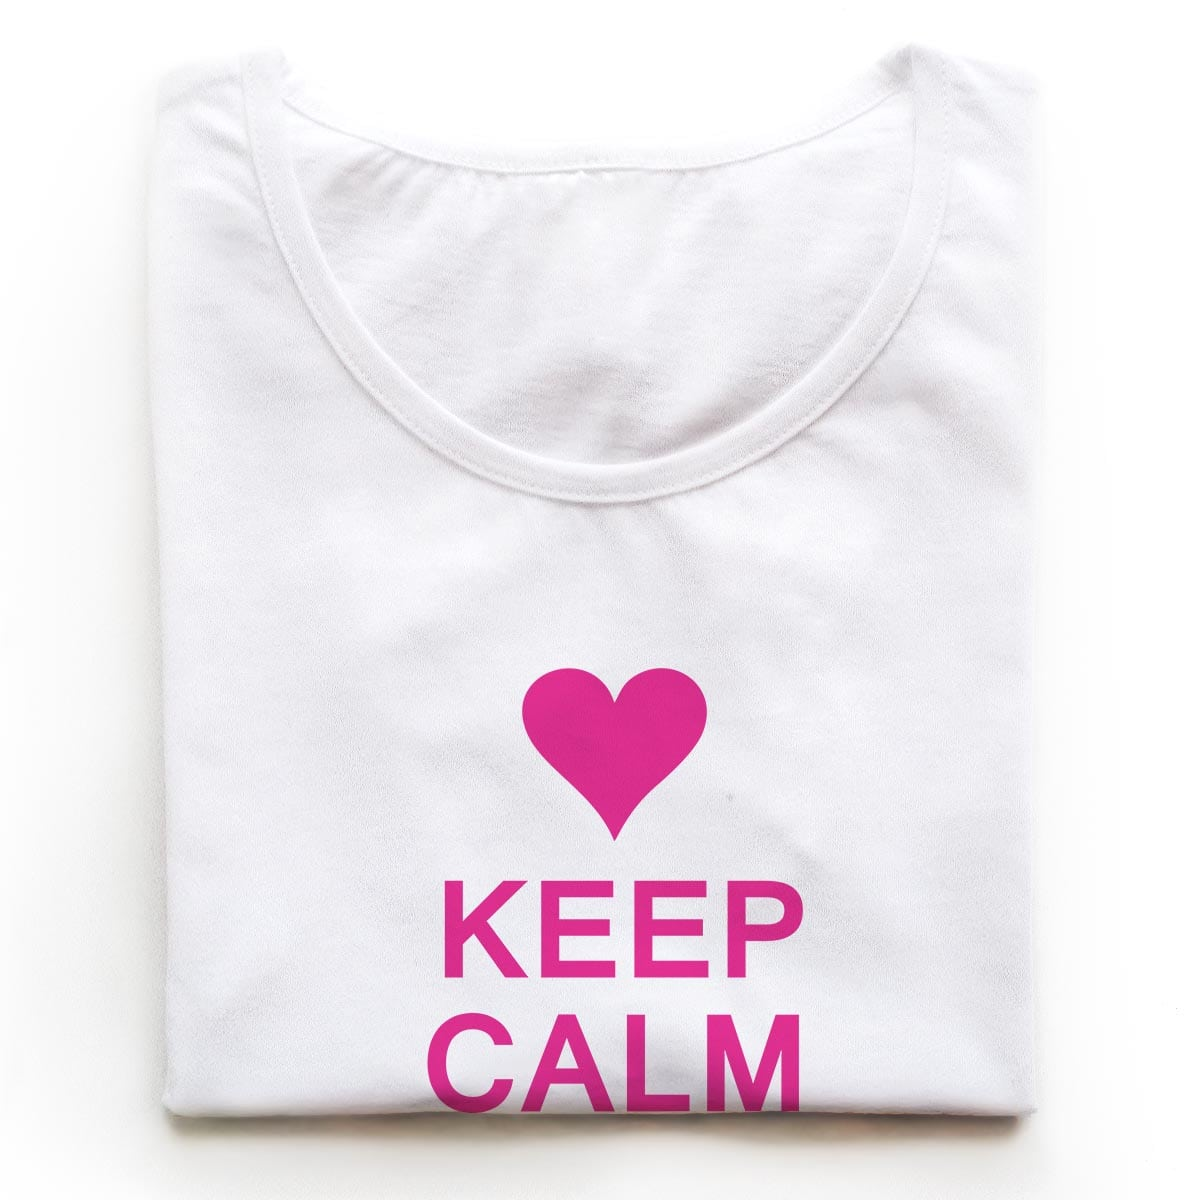 Tricouri petrecerea burlacitelor Keep calm - The Bride is here 2